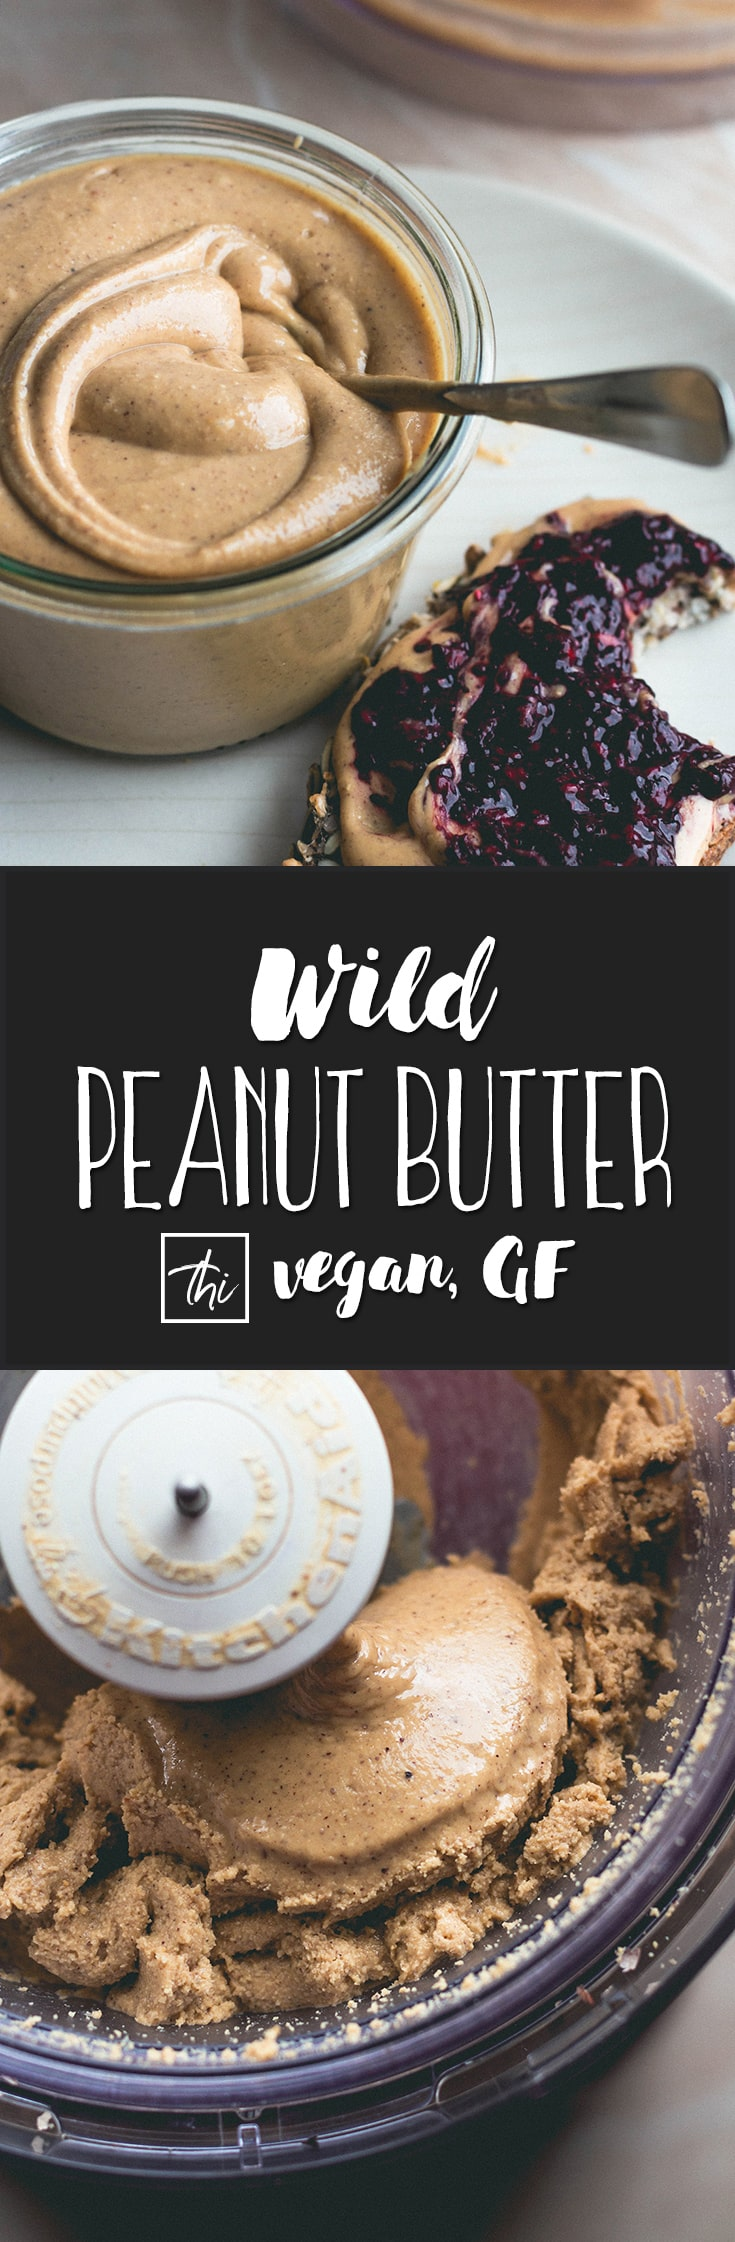 Wild Peanut Butter - Switch from regular store bought peanut butter to homemade WILD Peanut Butter. Read about the health benefits on my blog. Really delicious and so easy to make! | thehealthfulideas.com